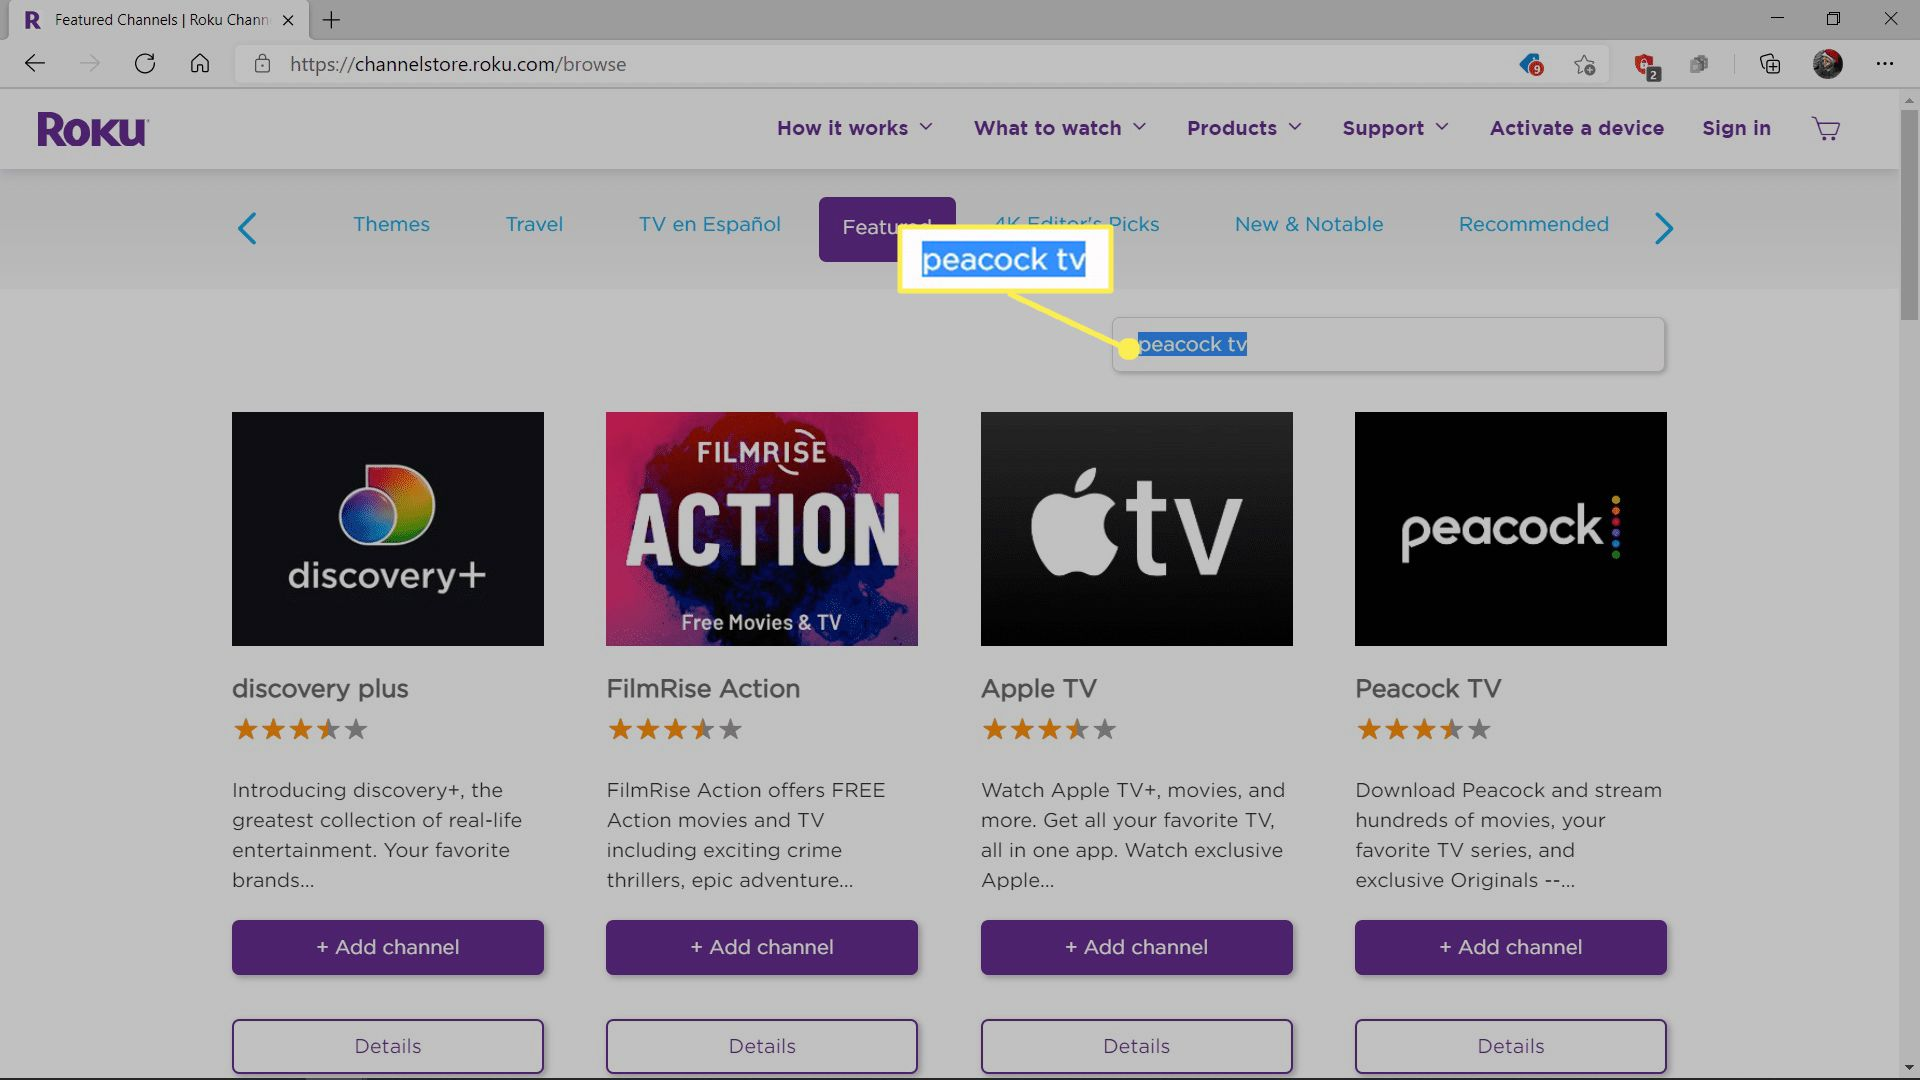 Searching for Peacock TV on the Roku Channel Store.